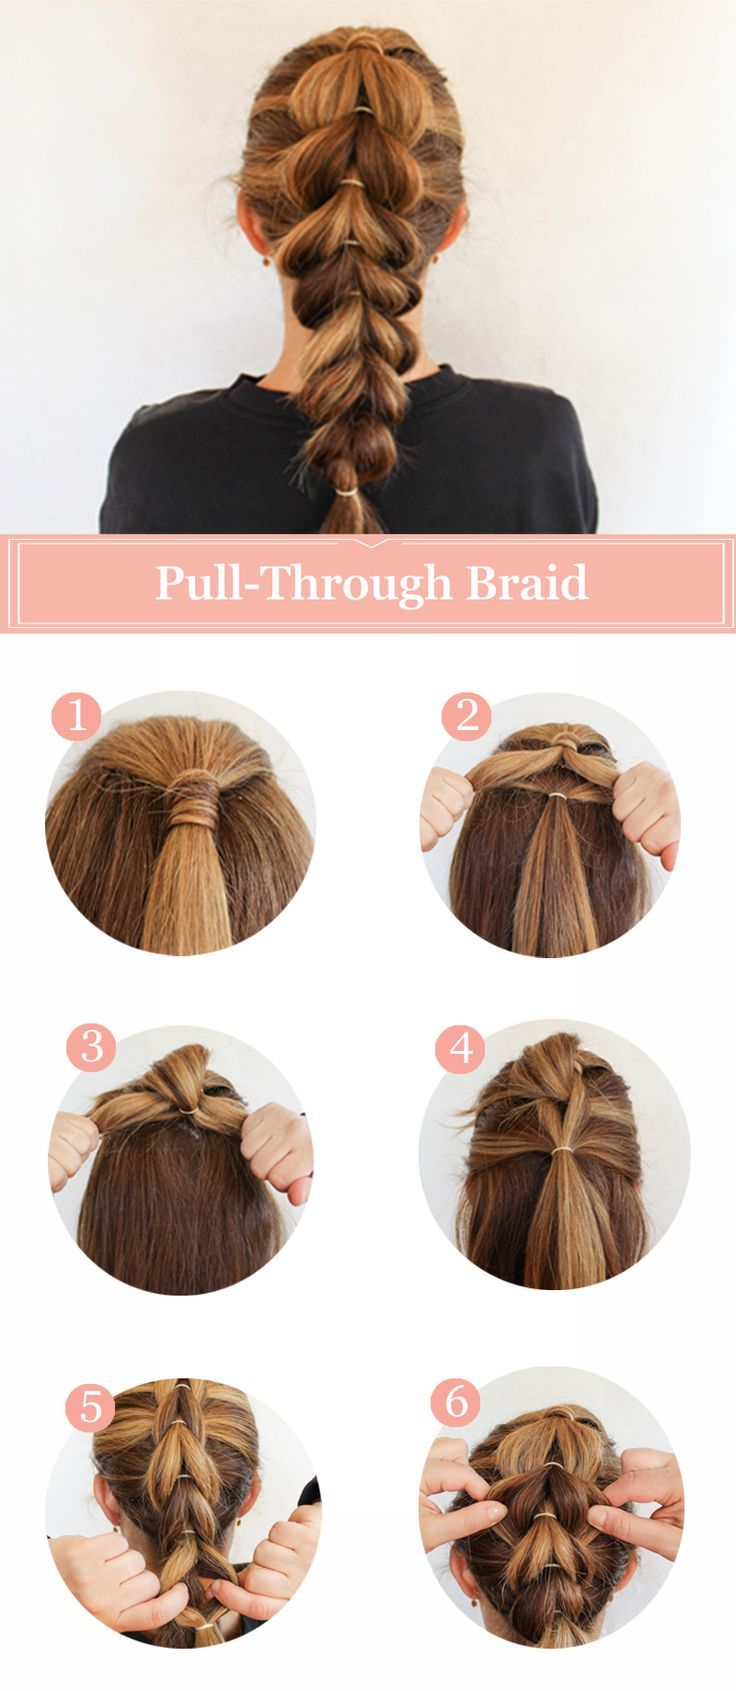 417 best Wedding Hairstyles images on Pinterest | Hairstyle ideas ...